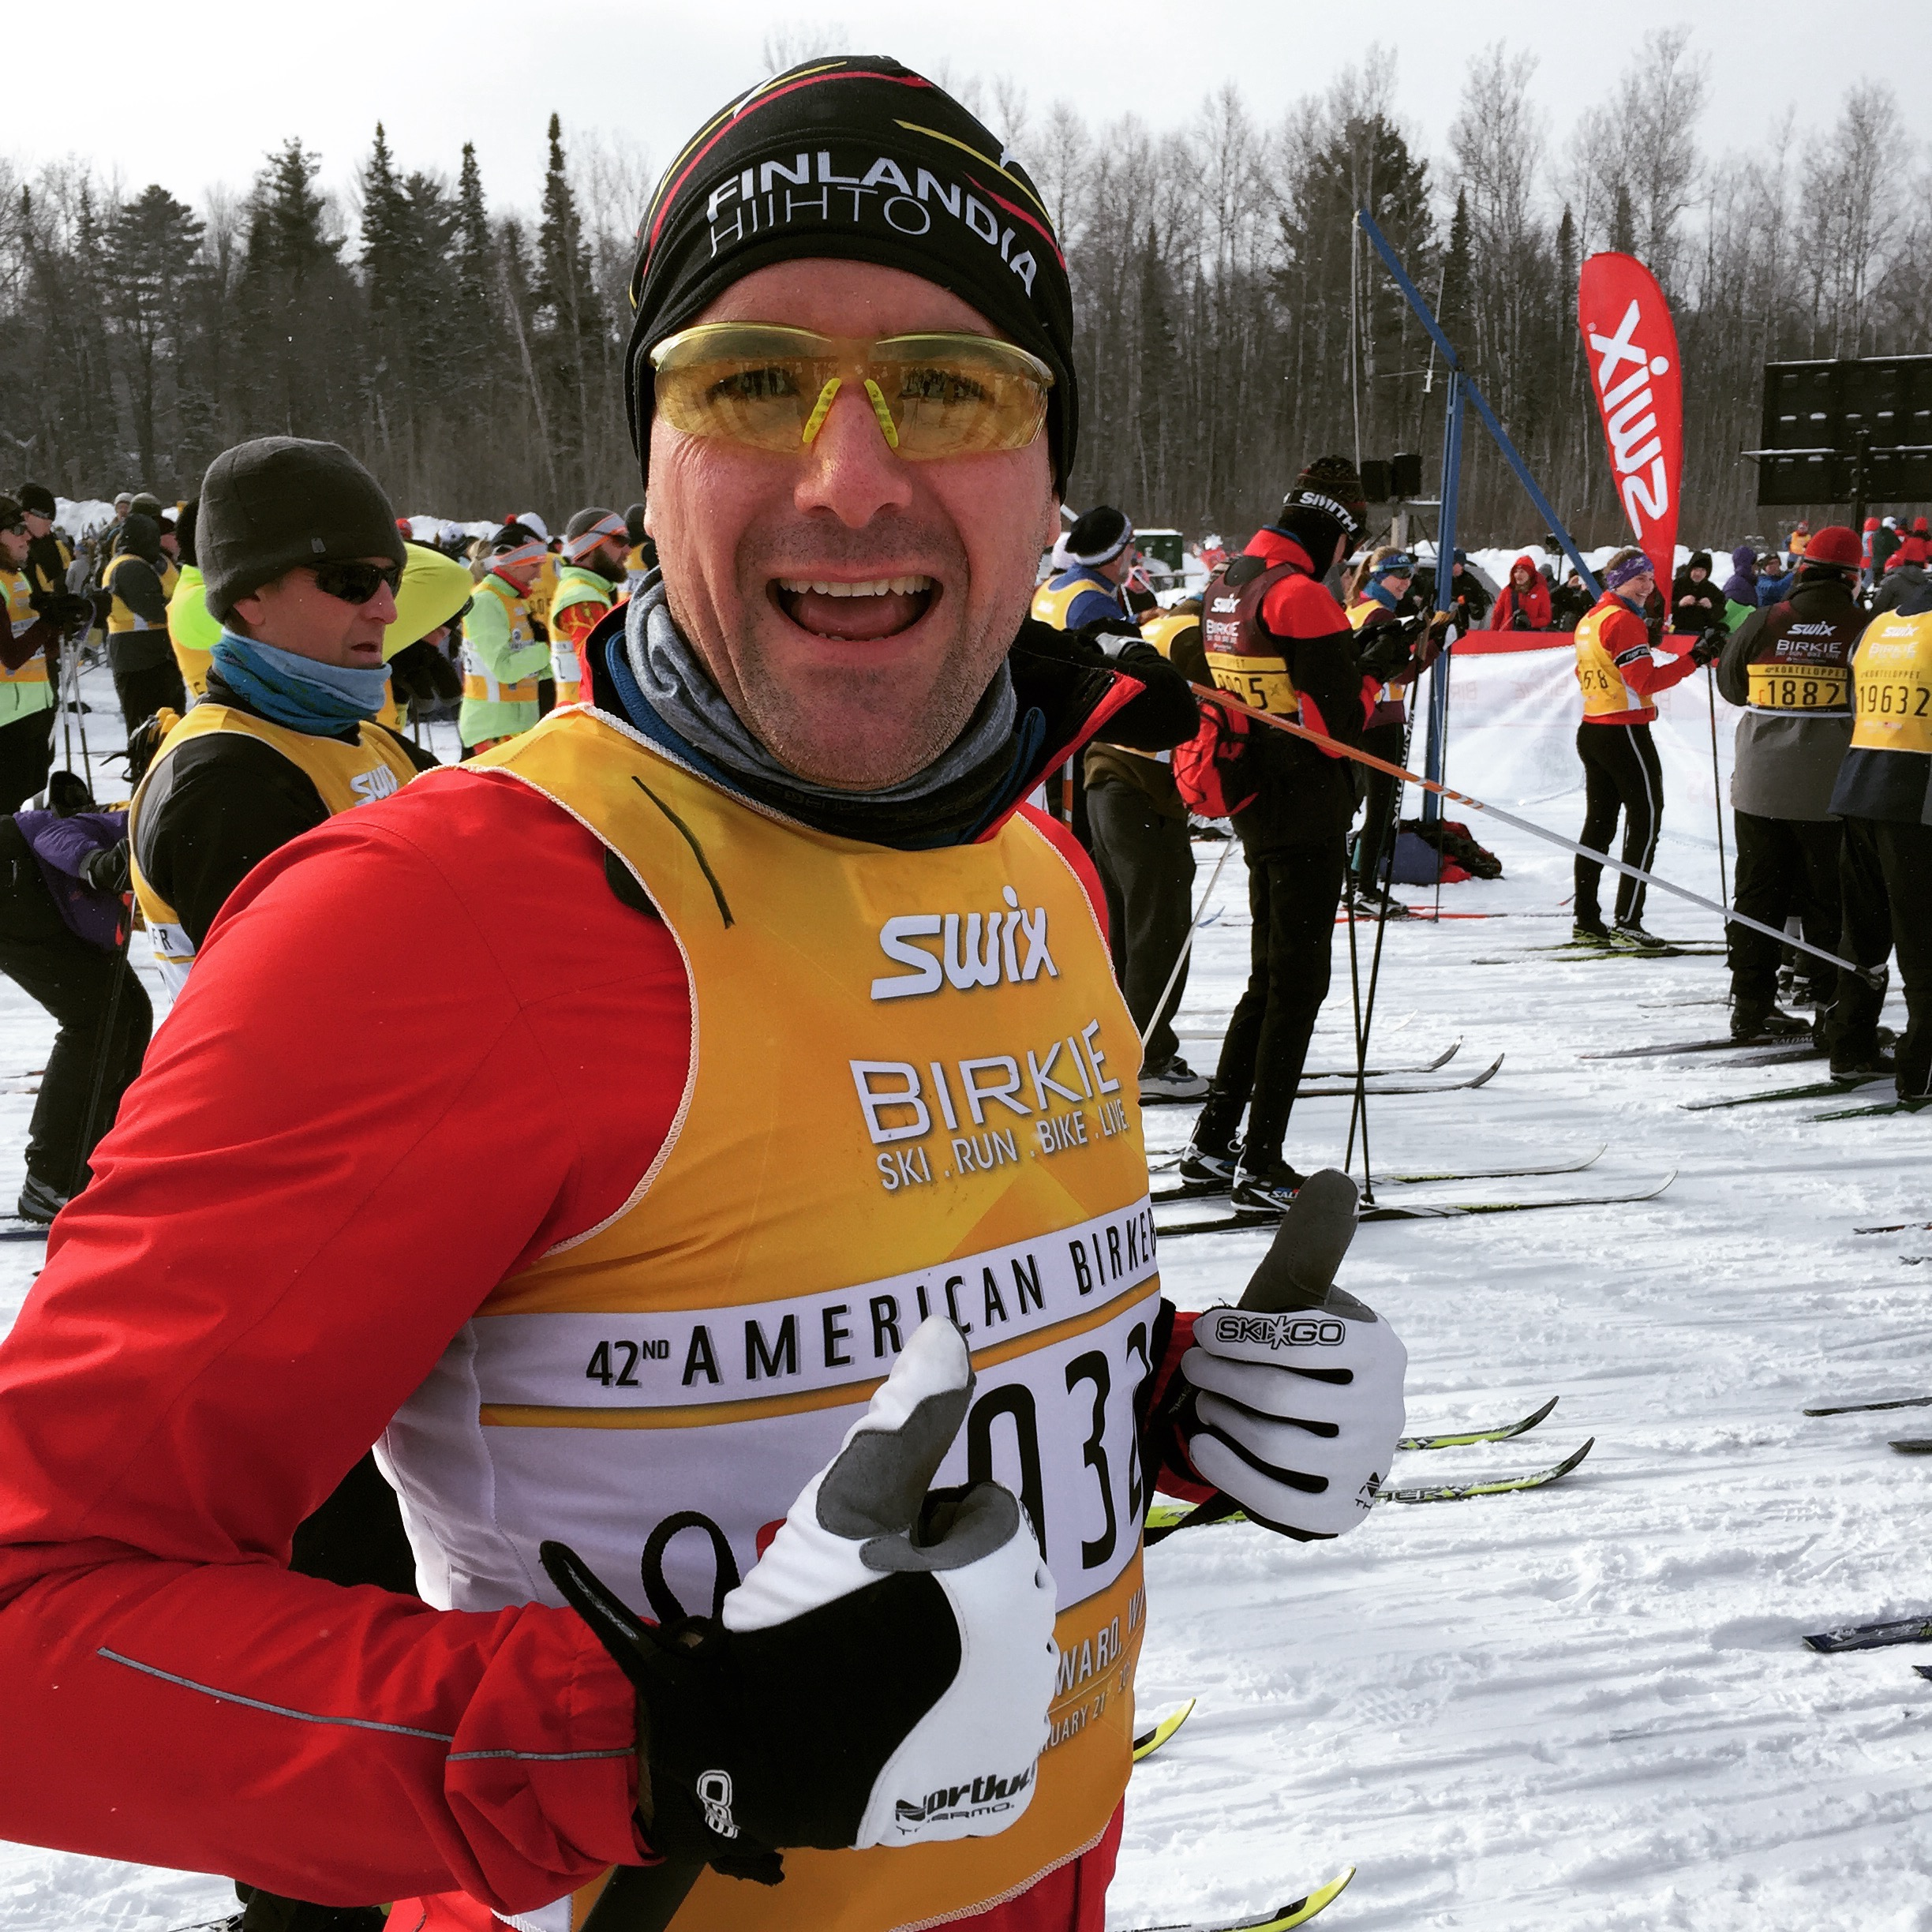 Mark Power on the start line at the American Birkie Race.